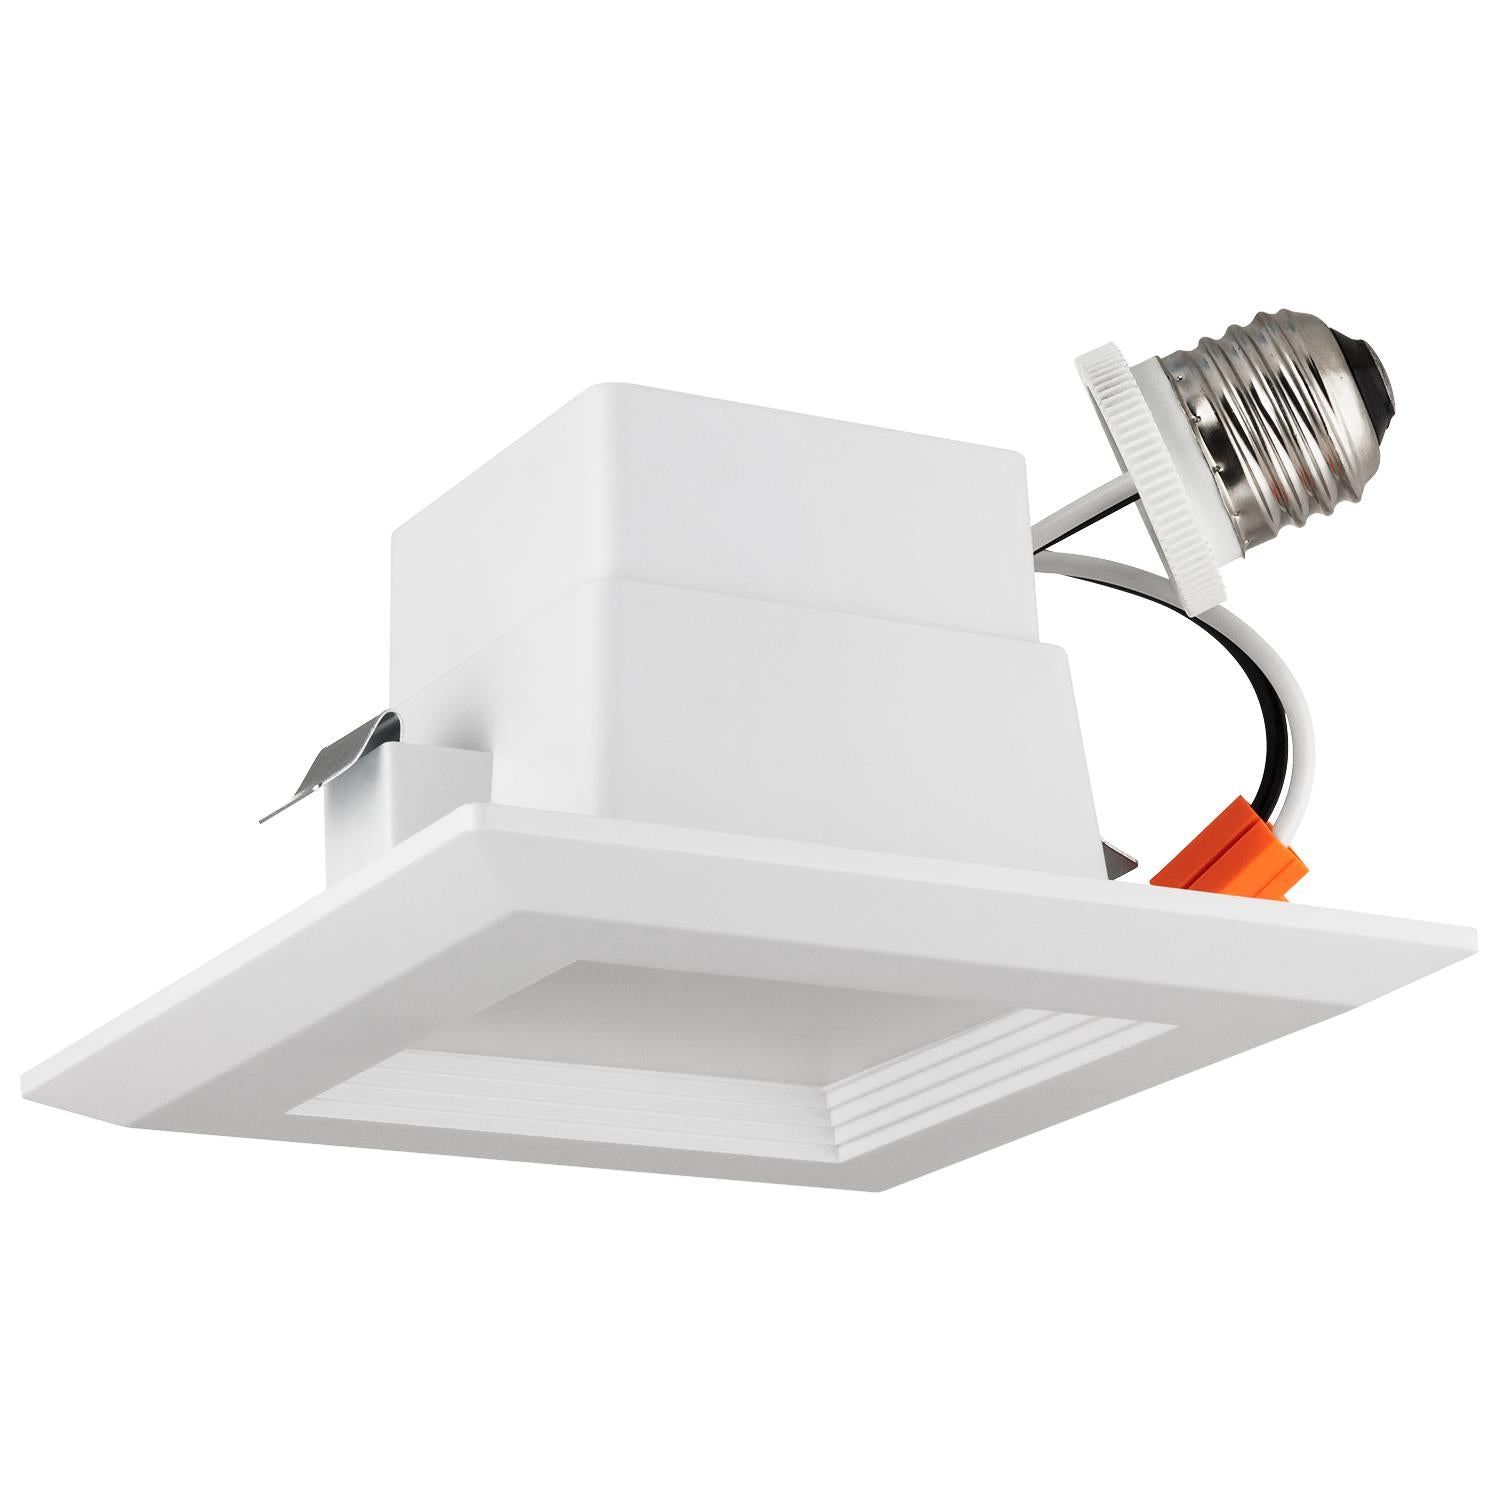 SUNLITE 10W E26 4in. Square Integrated LED Retrofit Downlight 3000K Warm White